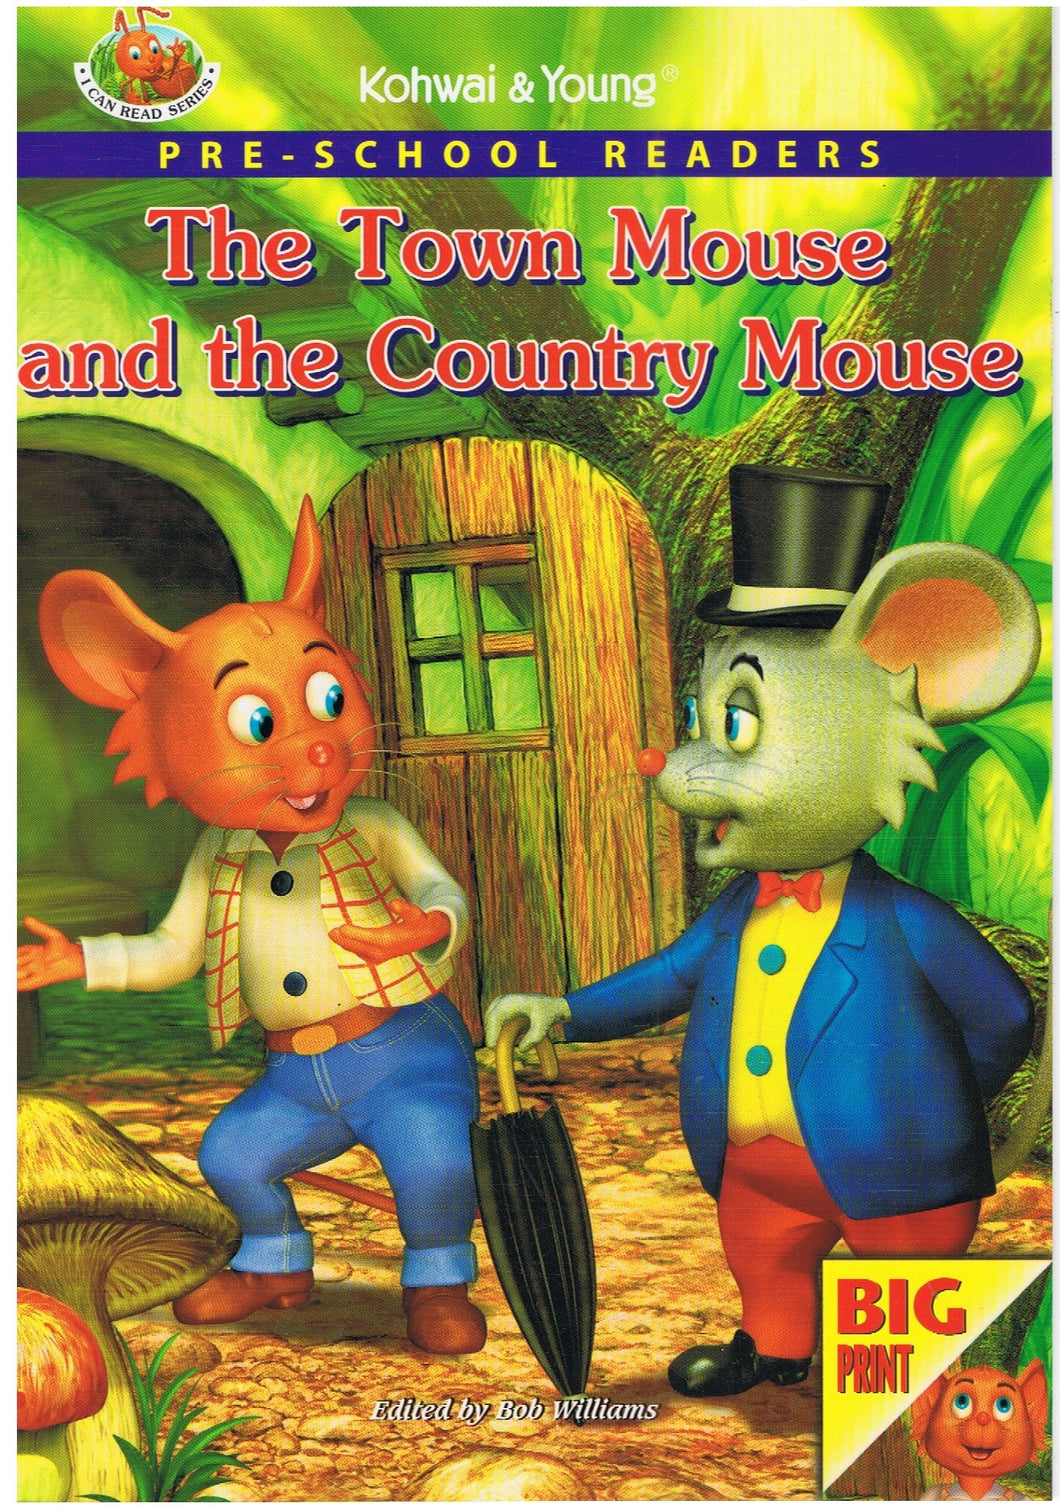 Kohwai & Young-Pre-School Readers: The Town Mouse And The Country Mouse-9789831911983-BukuDBP.com